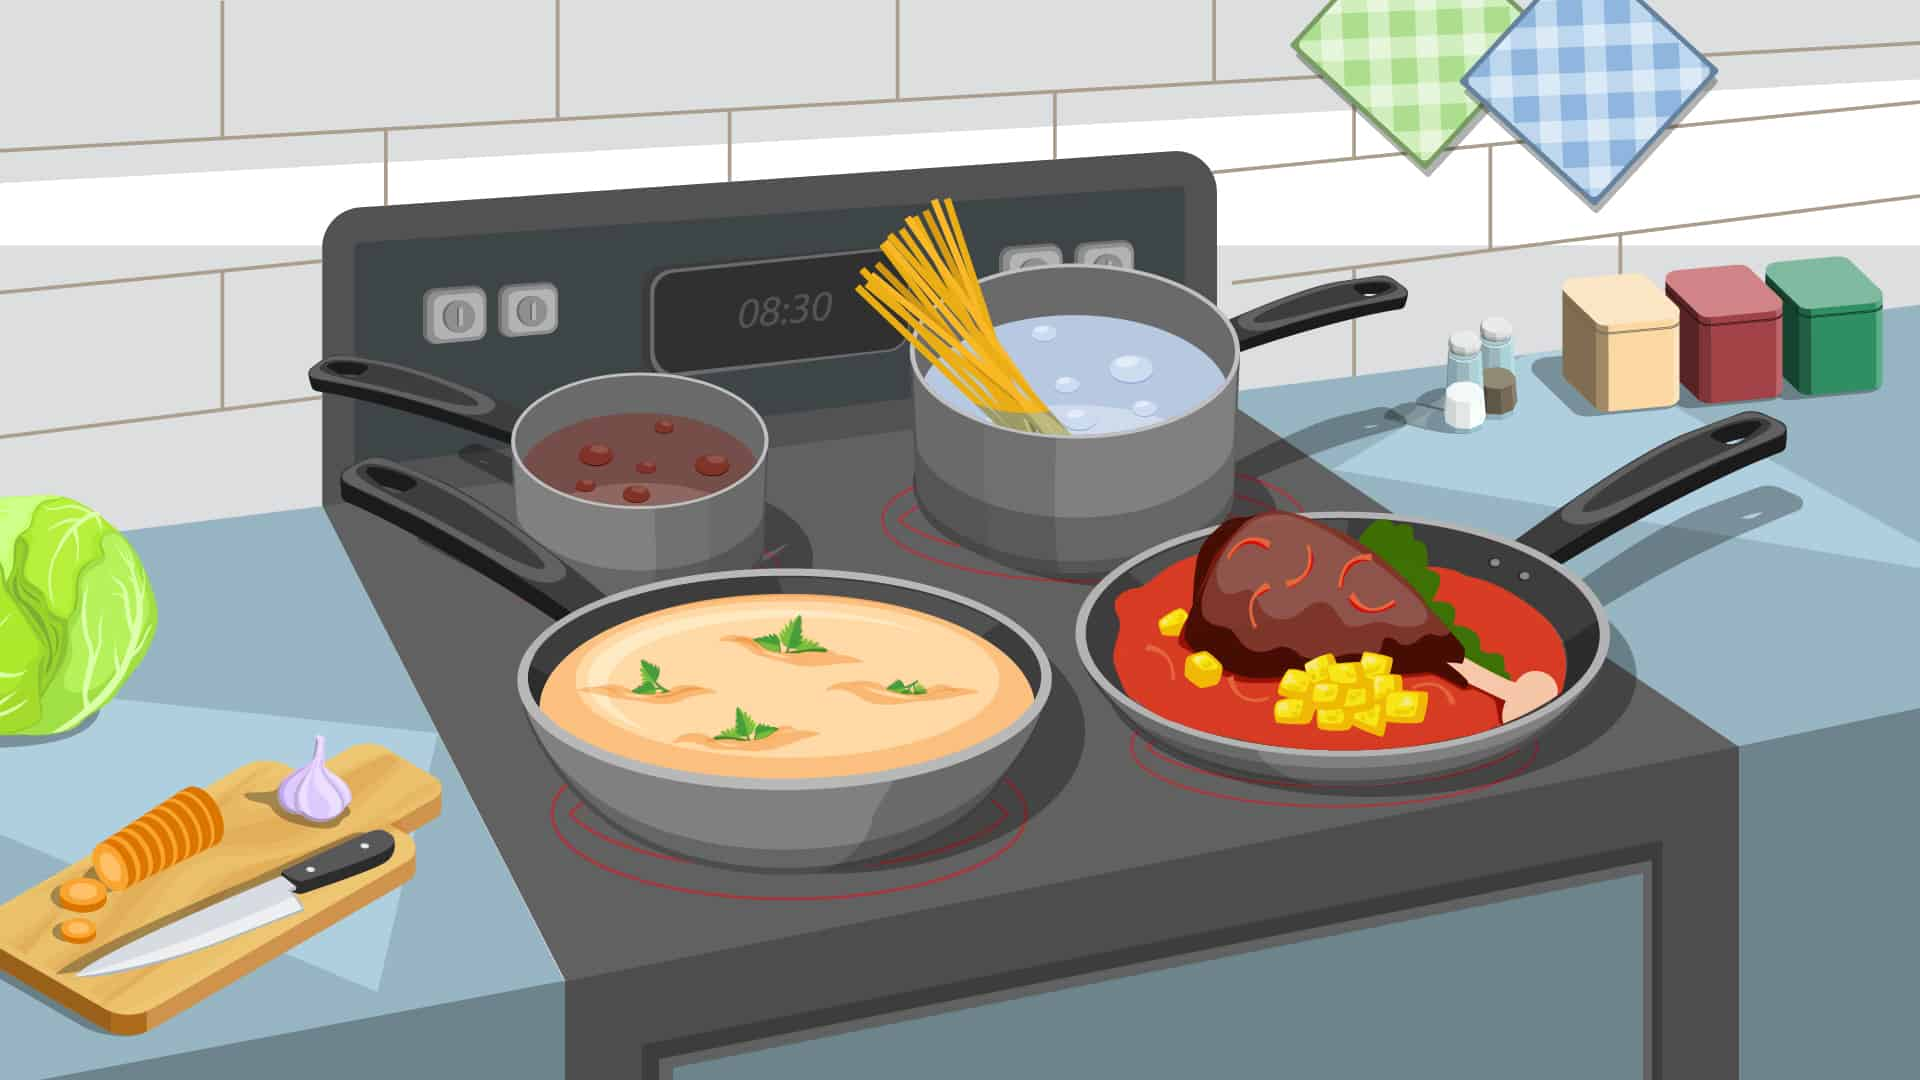 cartoon of food cooking in pans on stove